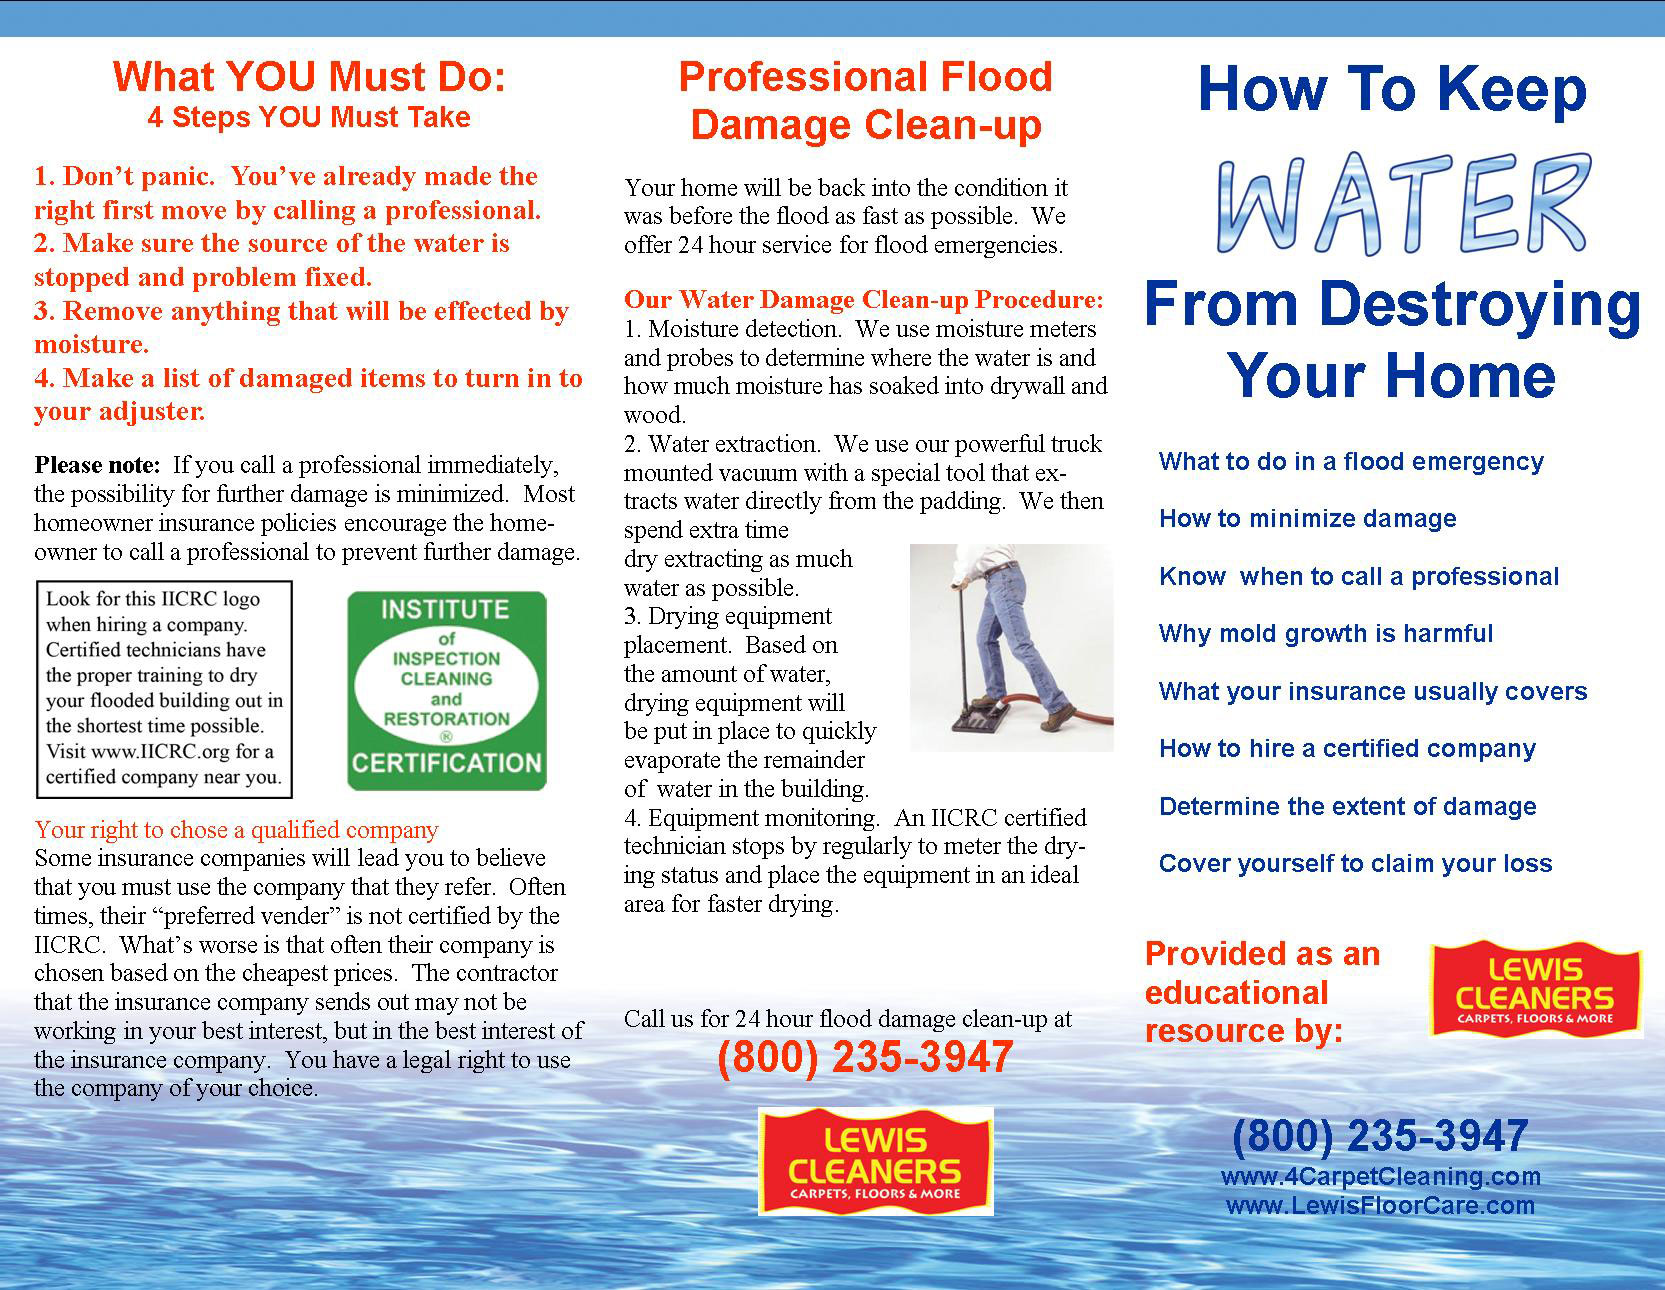 Water Damage Restoration Redwood City Lewis Cleaners